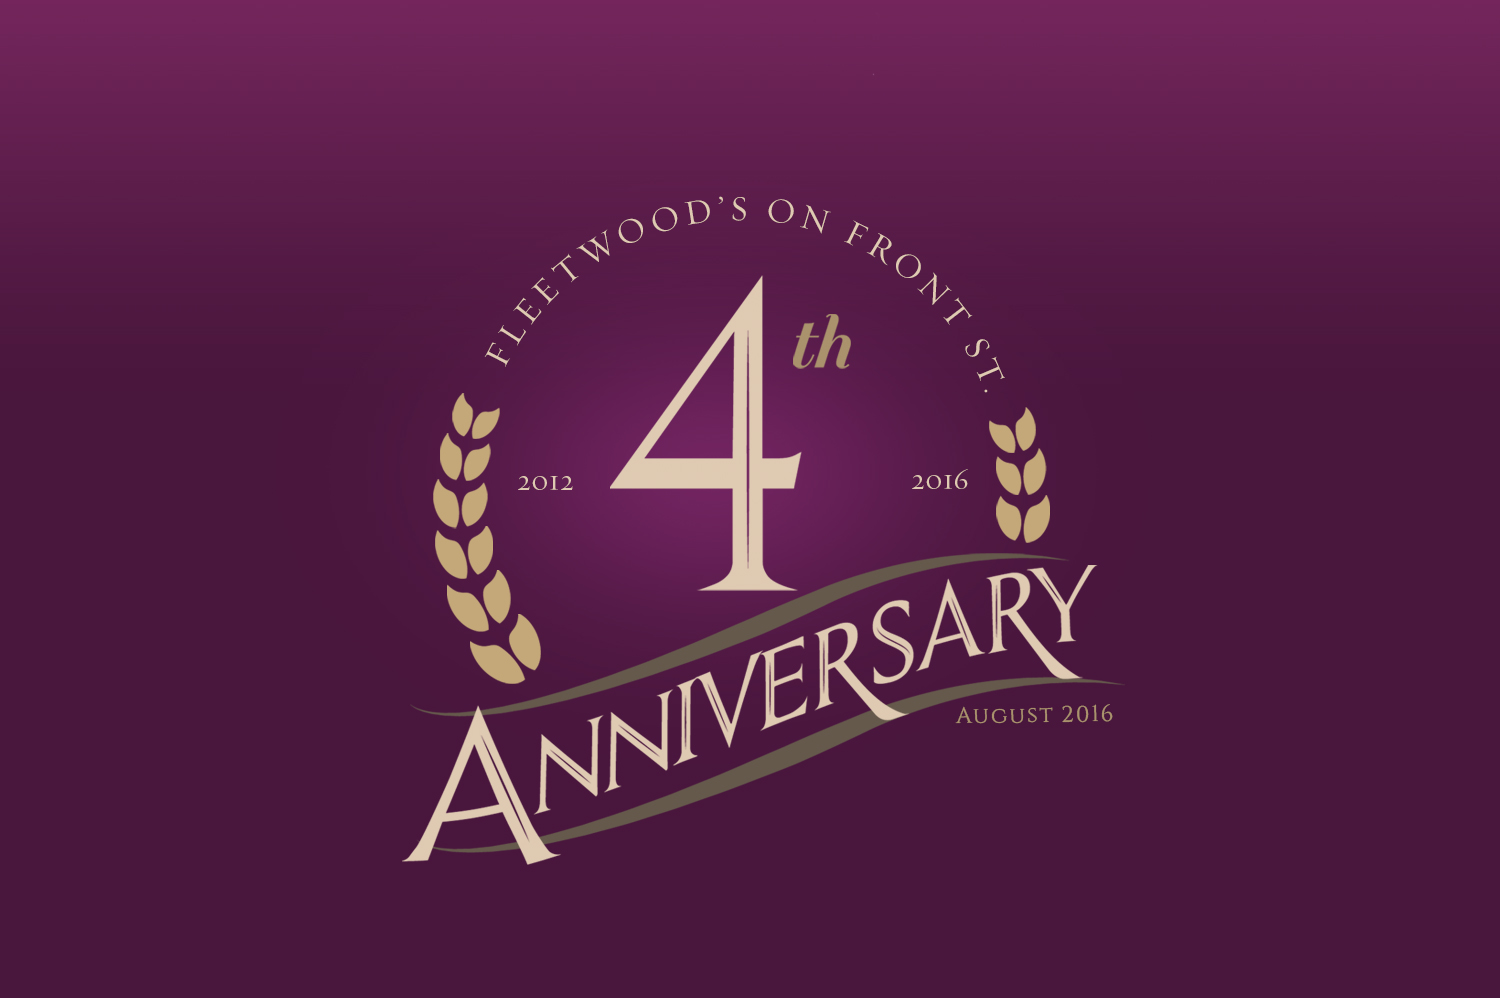 4th anniversary party fleetwood s on front st